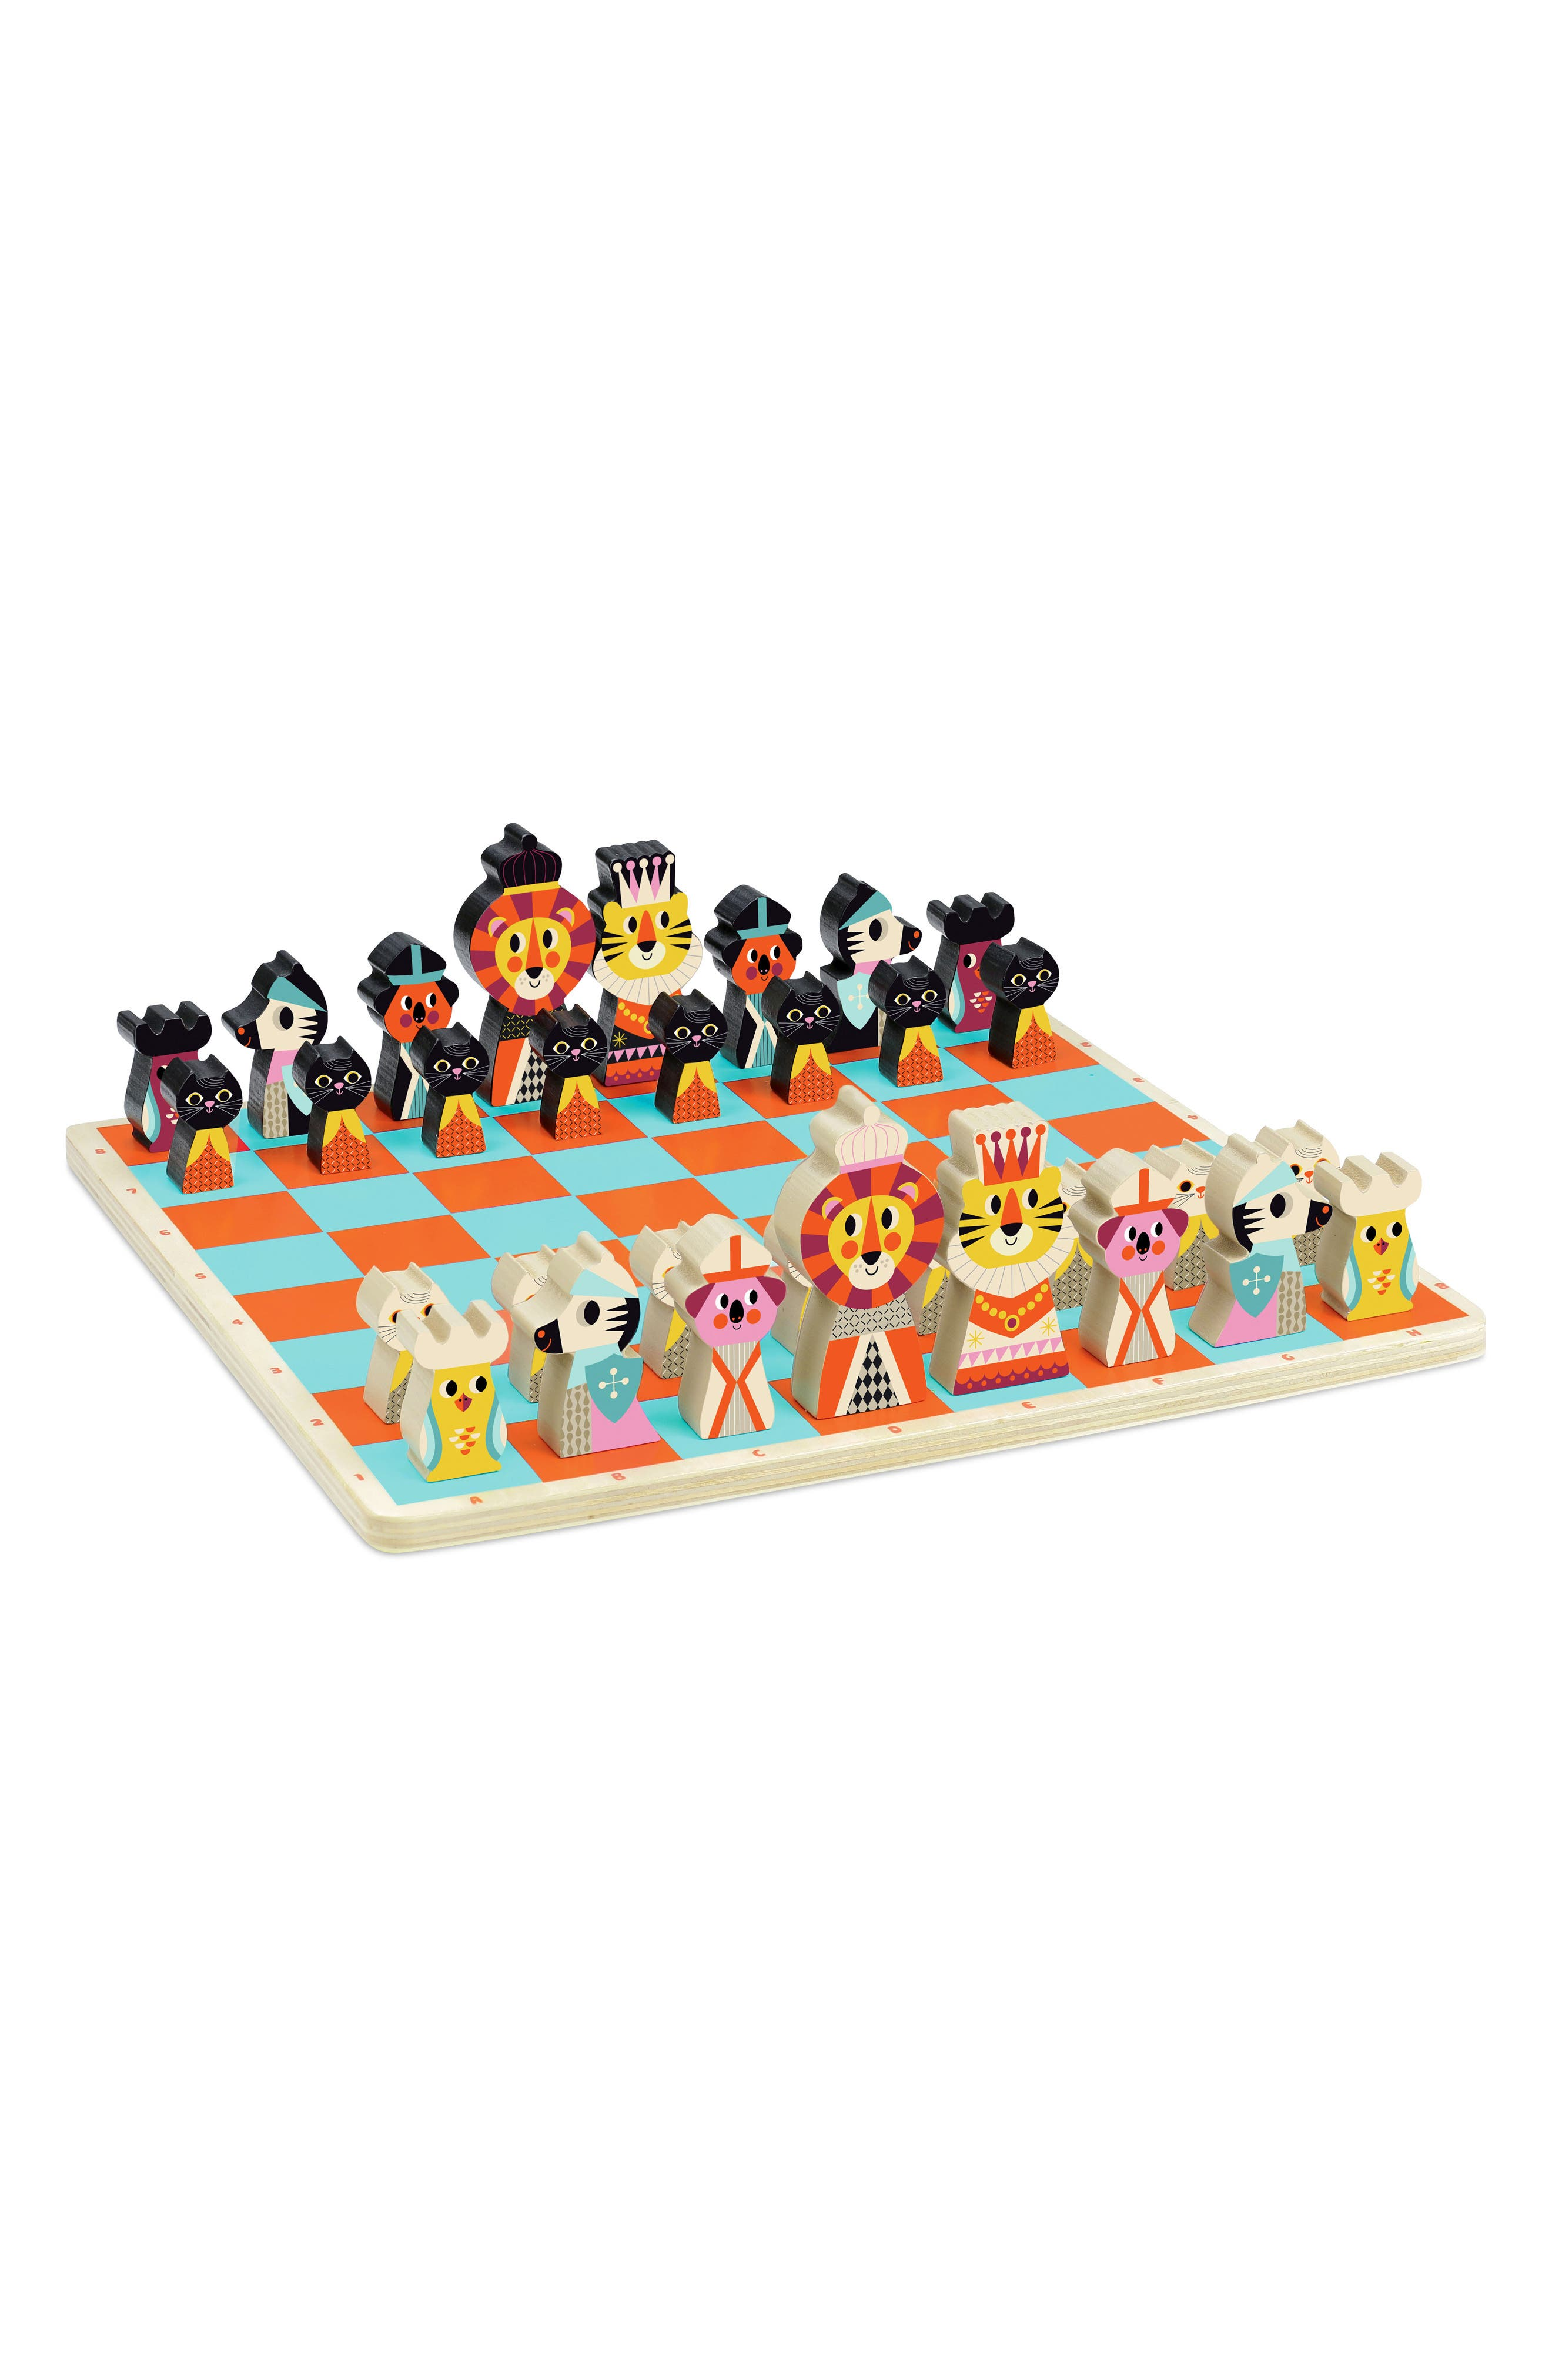 Alternate Image 1 Selected - MoMA Design Store My First Chess Set